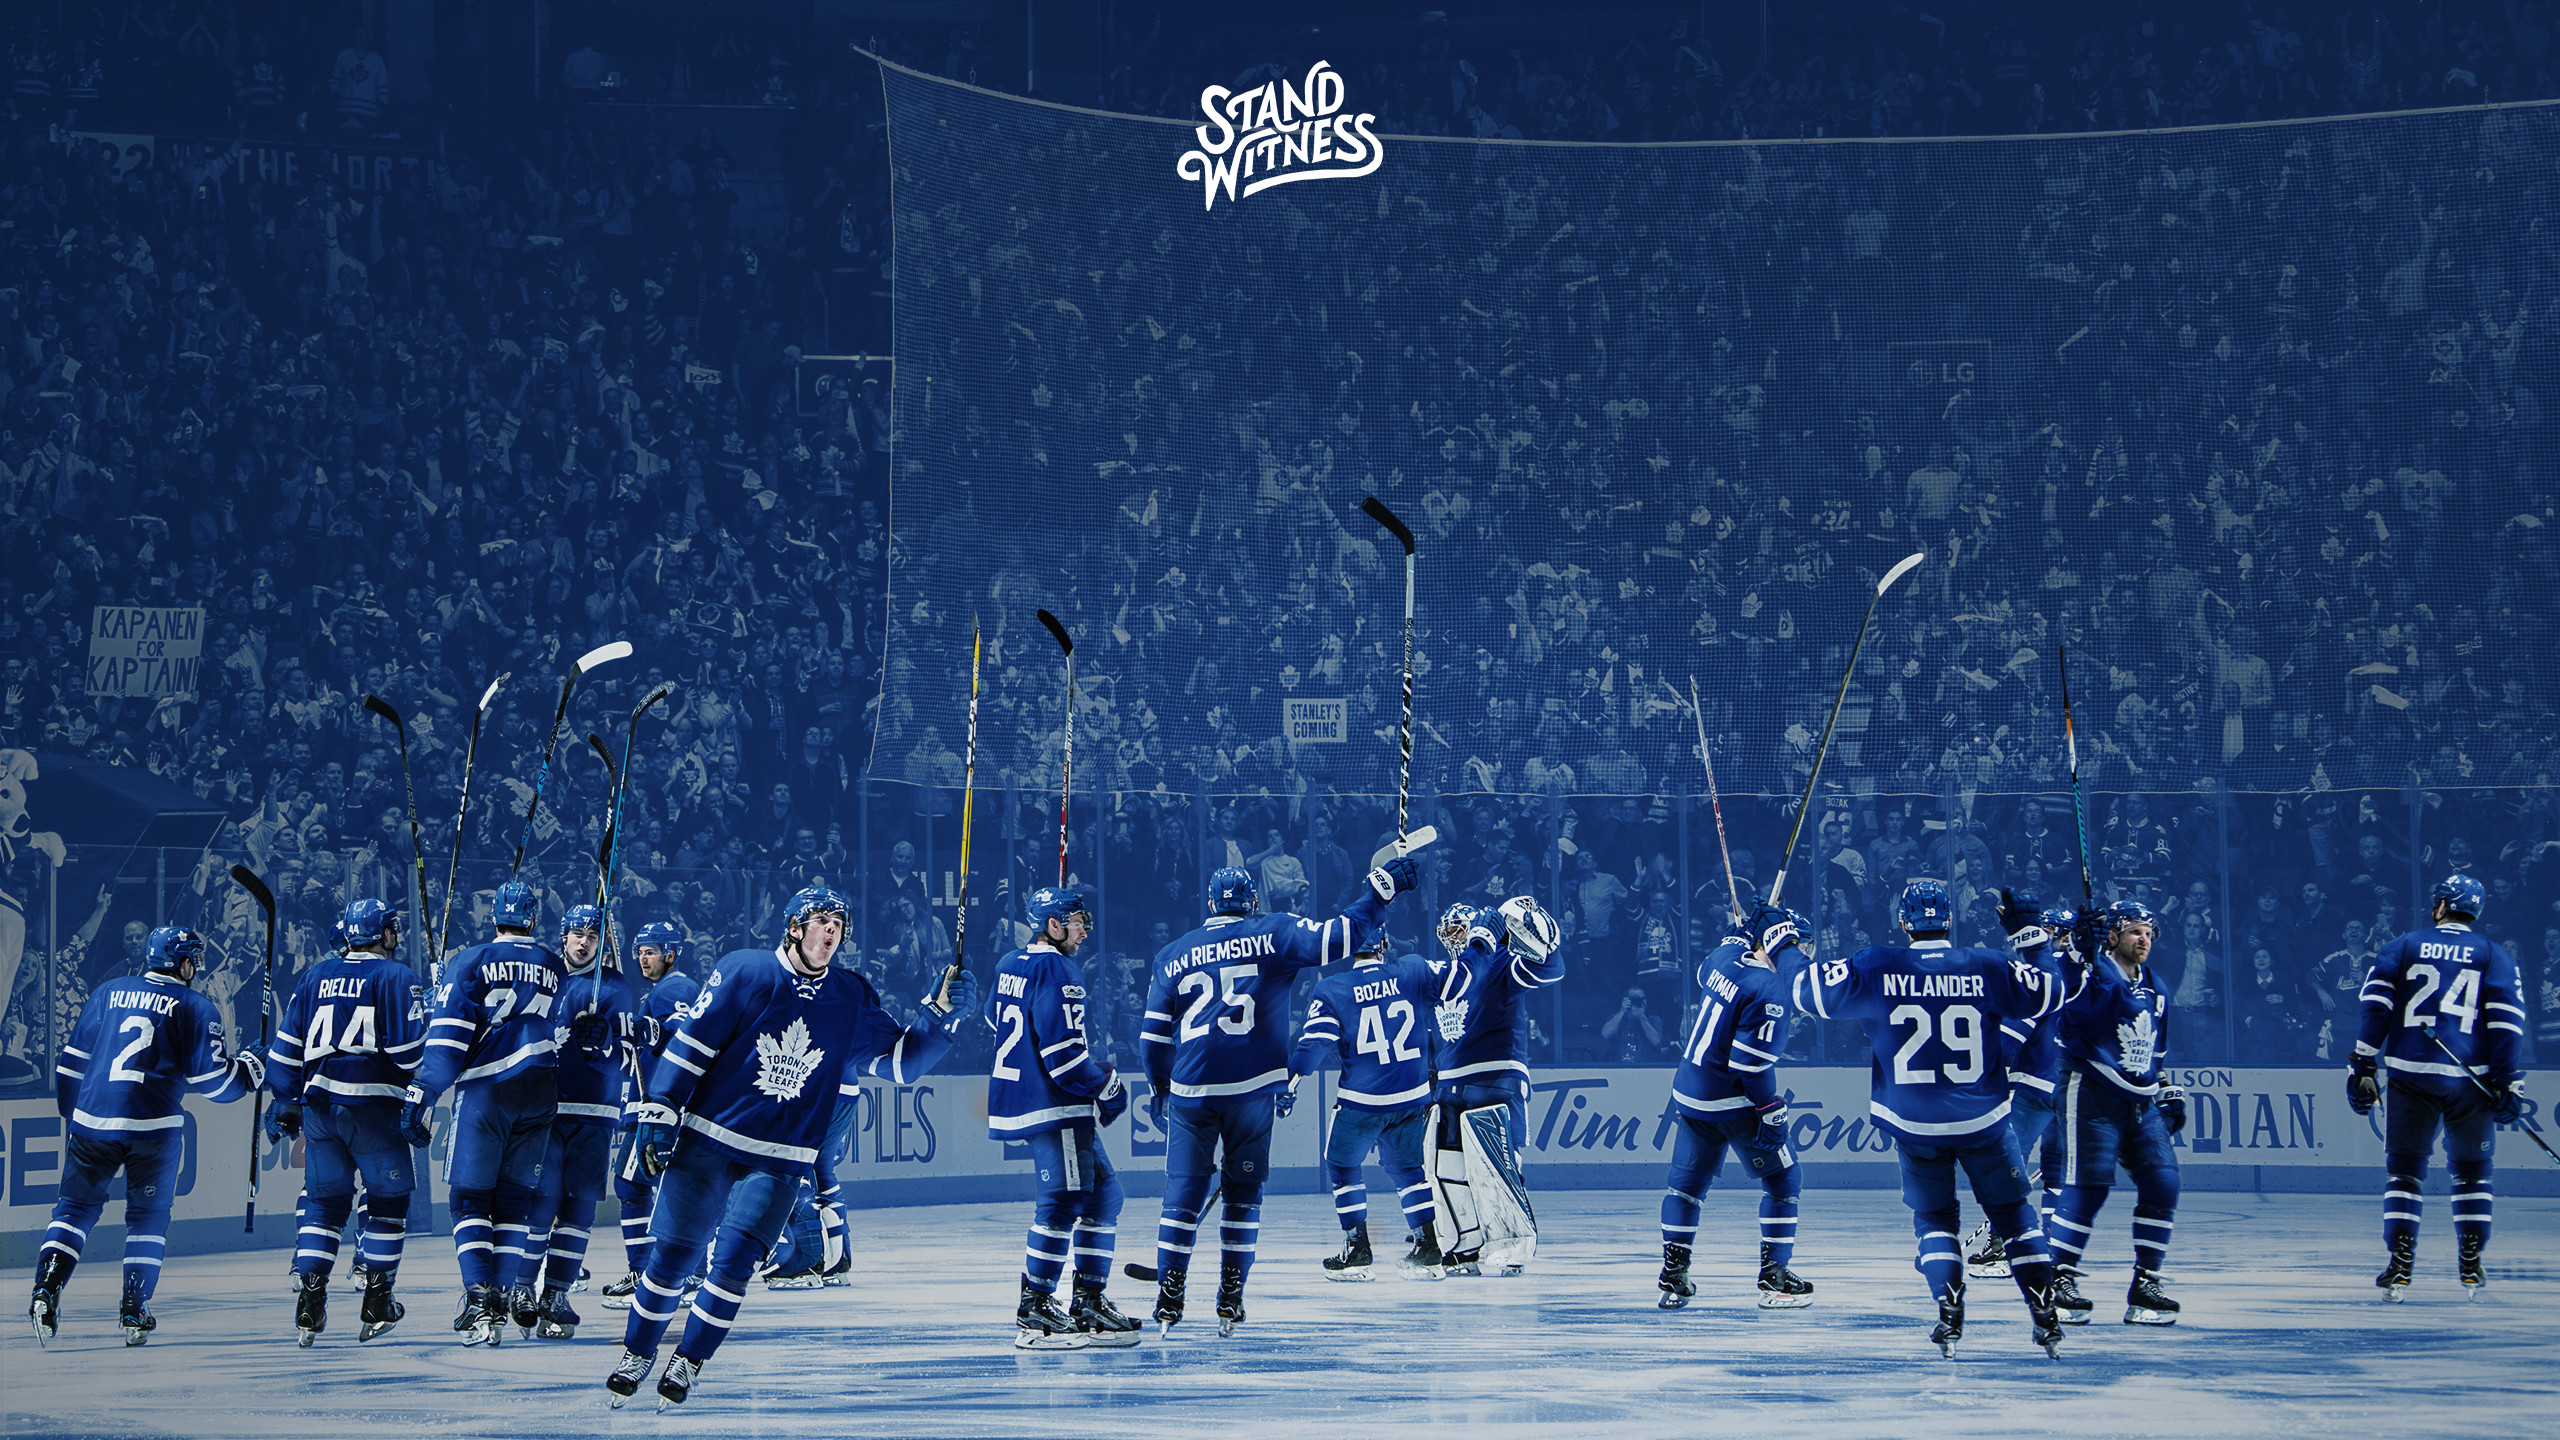 Toronto Maple Leafs 2018 Wallpaper 69 Pictures